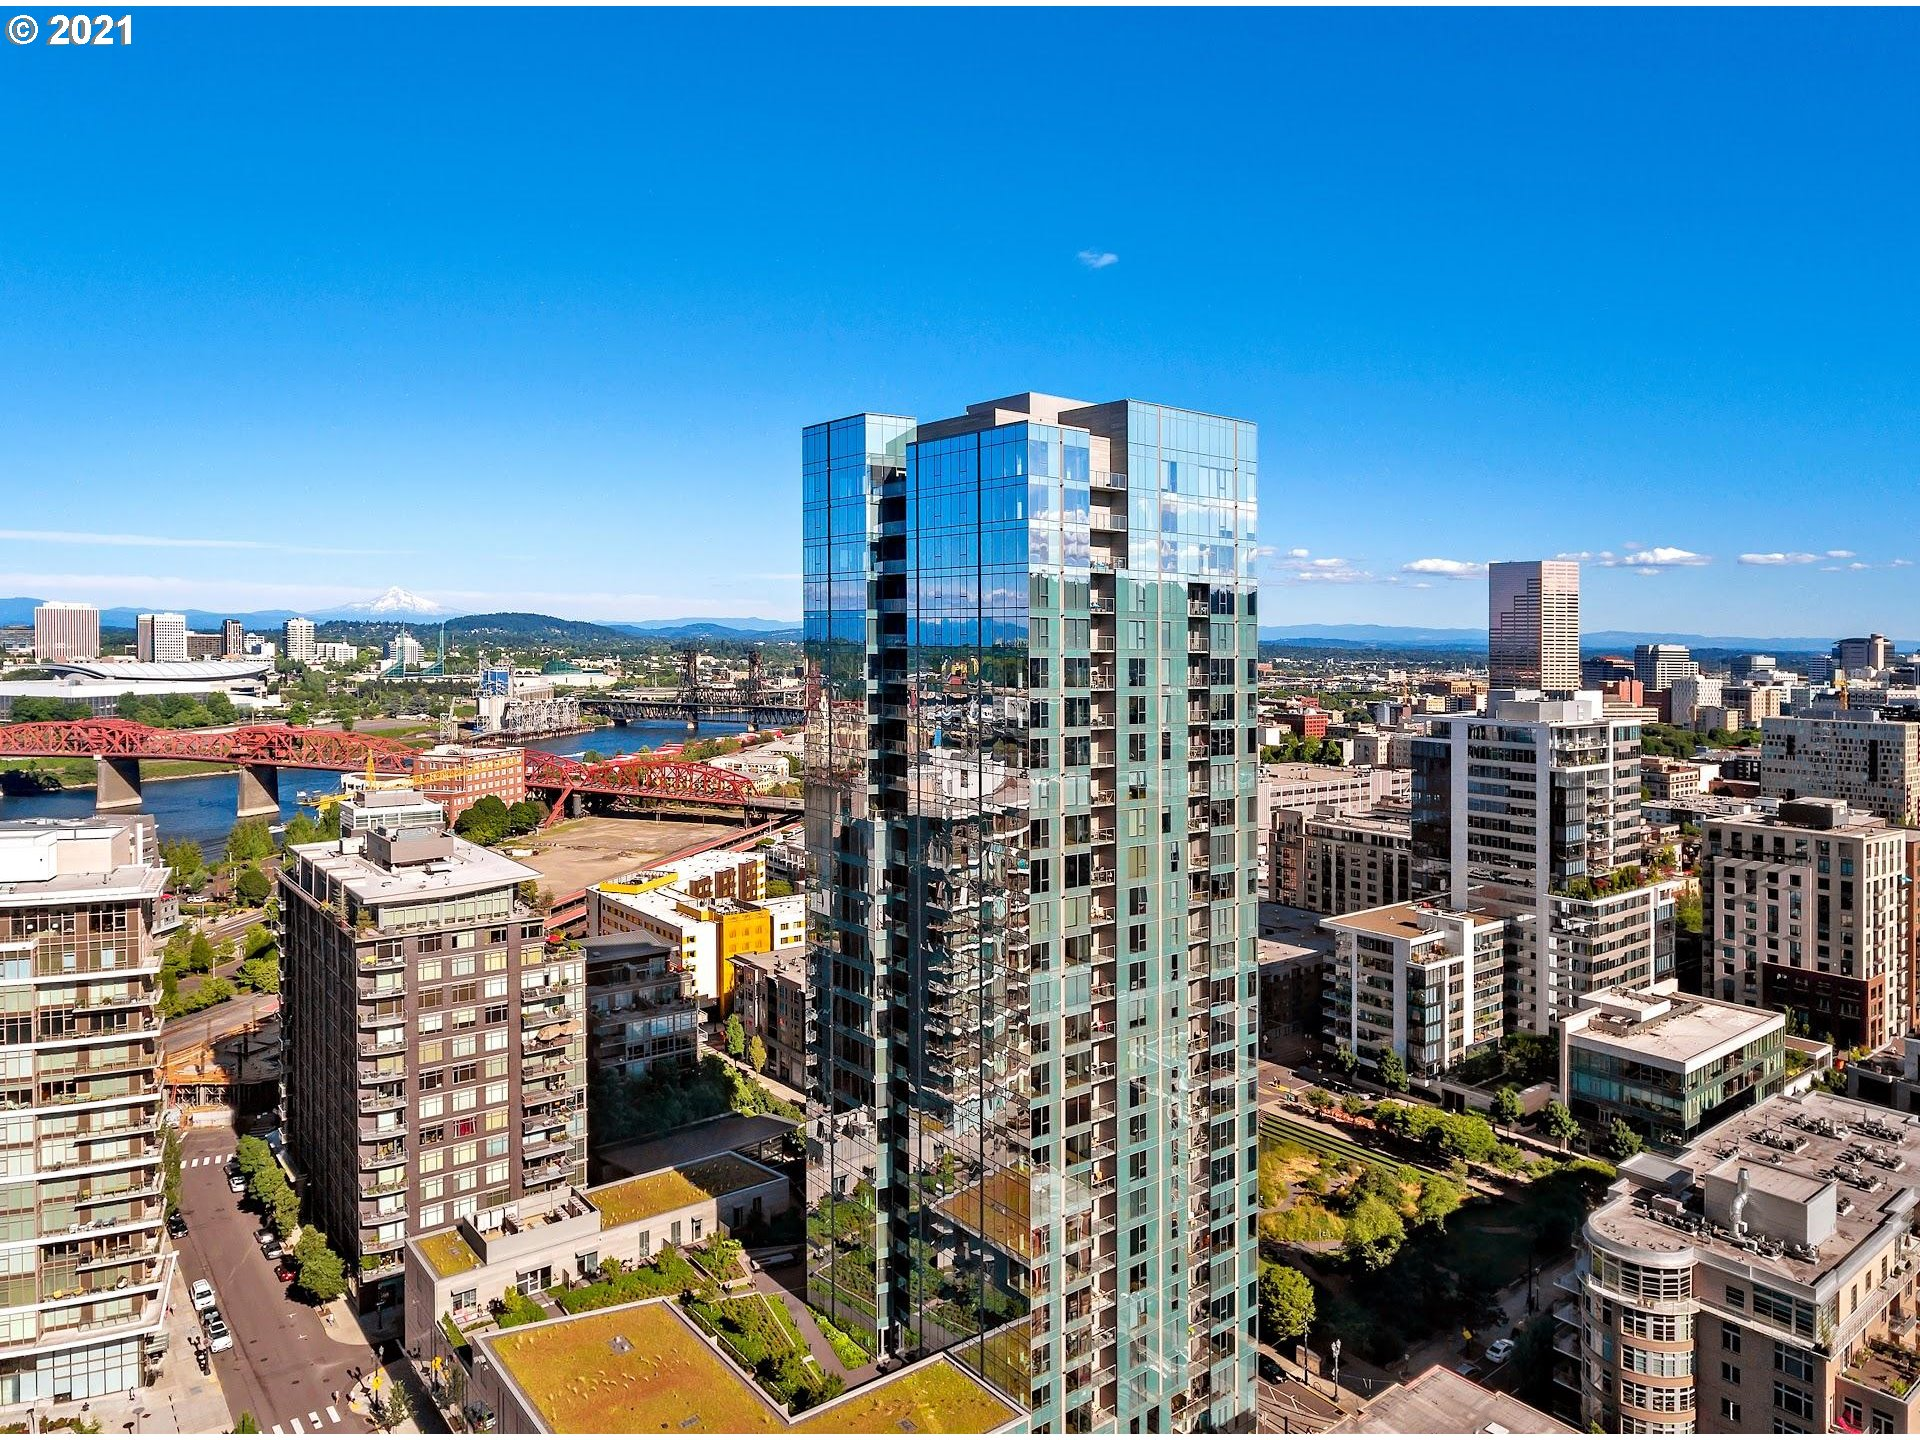 Come live on the 28th floor of Portland's iconic condo tower - The Cosmopolitan. The city's finest Penthouse with views to match the well appointed interiors. Floor to ceiling windows from every room offer unobstructed views of the city, bridges, river & 3 mountains. Great room style living, 3 private balconies, stunning entertaining spaces, 3 bedrooms w accompanying baths & additional office. Master suite with fireplace, spa amenities, and walk-in. Private in-home sauna, steam shower & gym.